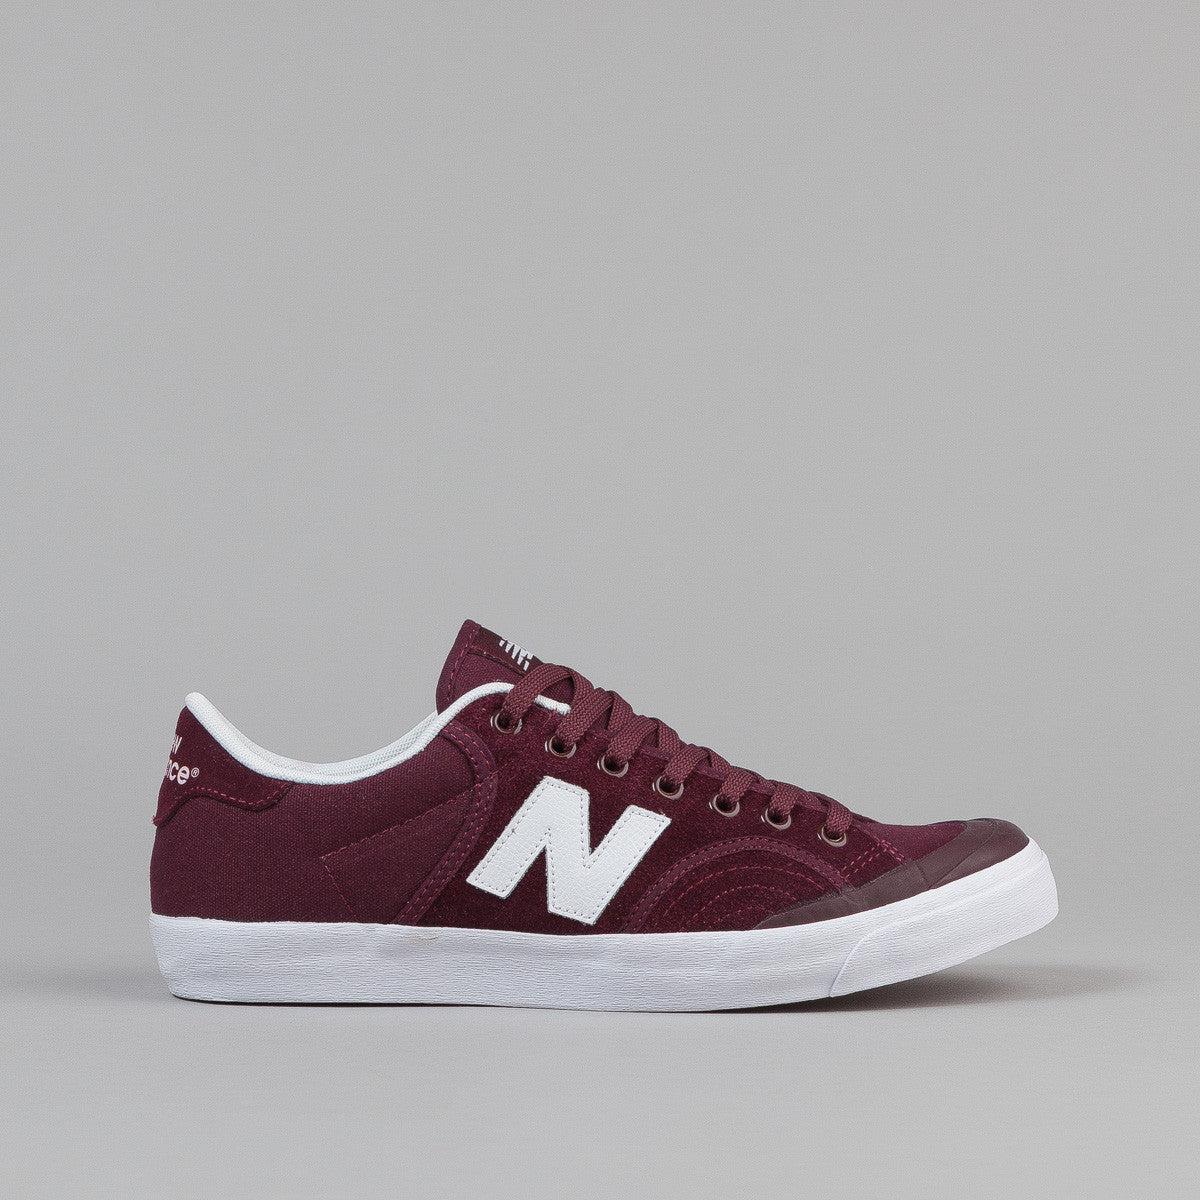 New Balance Numeric Pro Court 212 Shoes